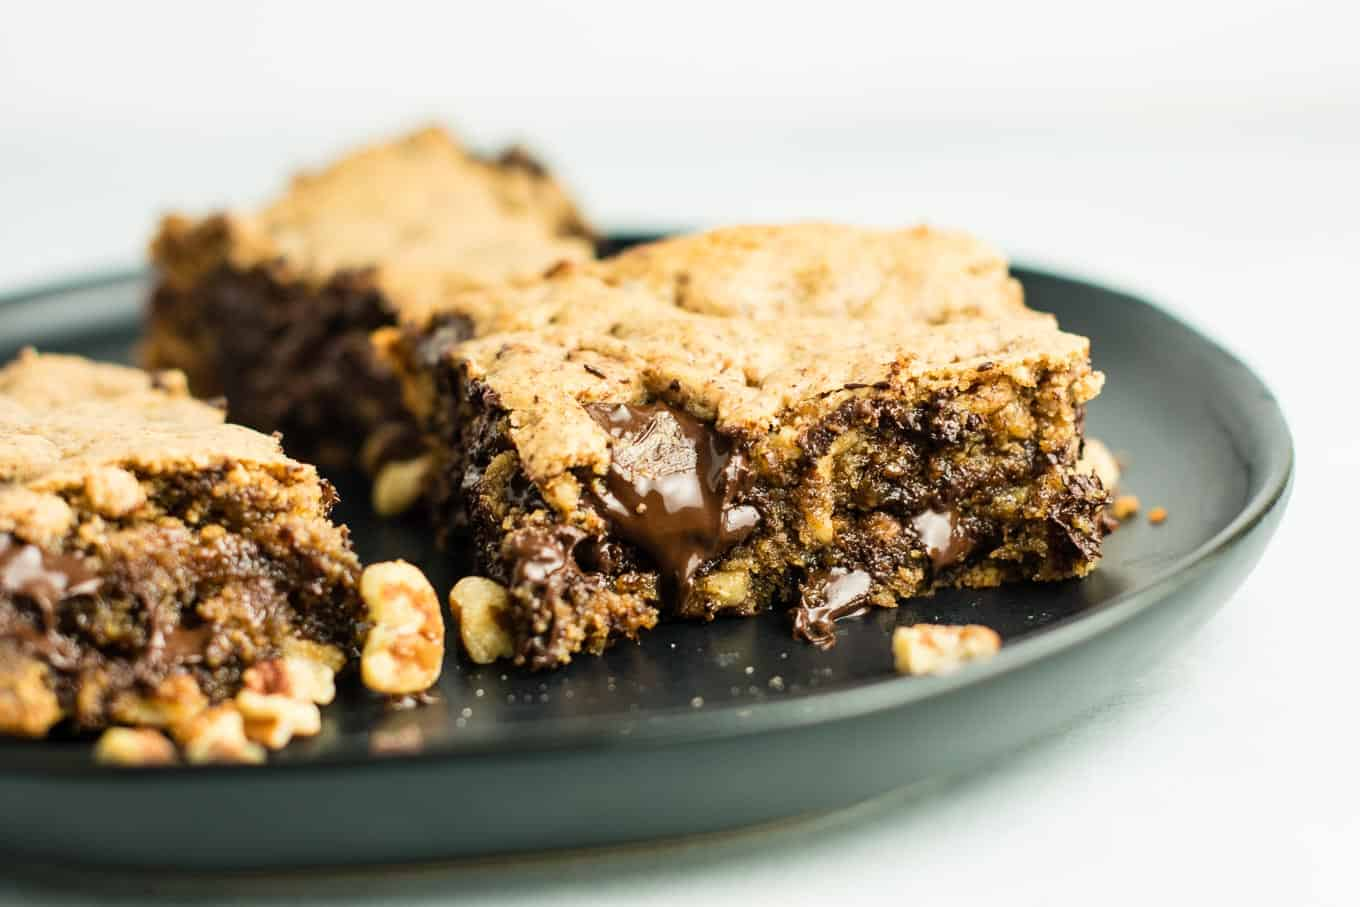 gluten free dessert recipes - (Death by Chocolate) Dark Chocolate Pecan Cookie Bars recipe – gluten free and dairy free. You won't believe how good these are! Serve warm with a scoop of vanilla ice cream! #glutenfree #dairyfree #cookiebars #dessert #chocolate